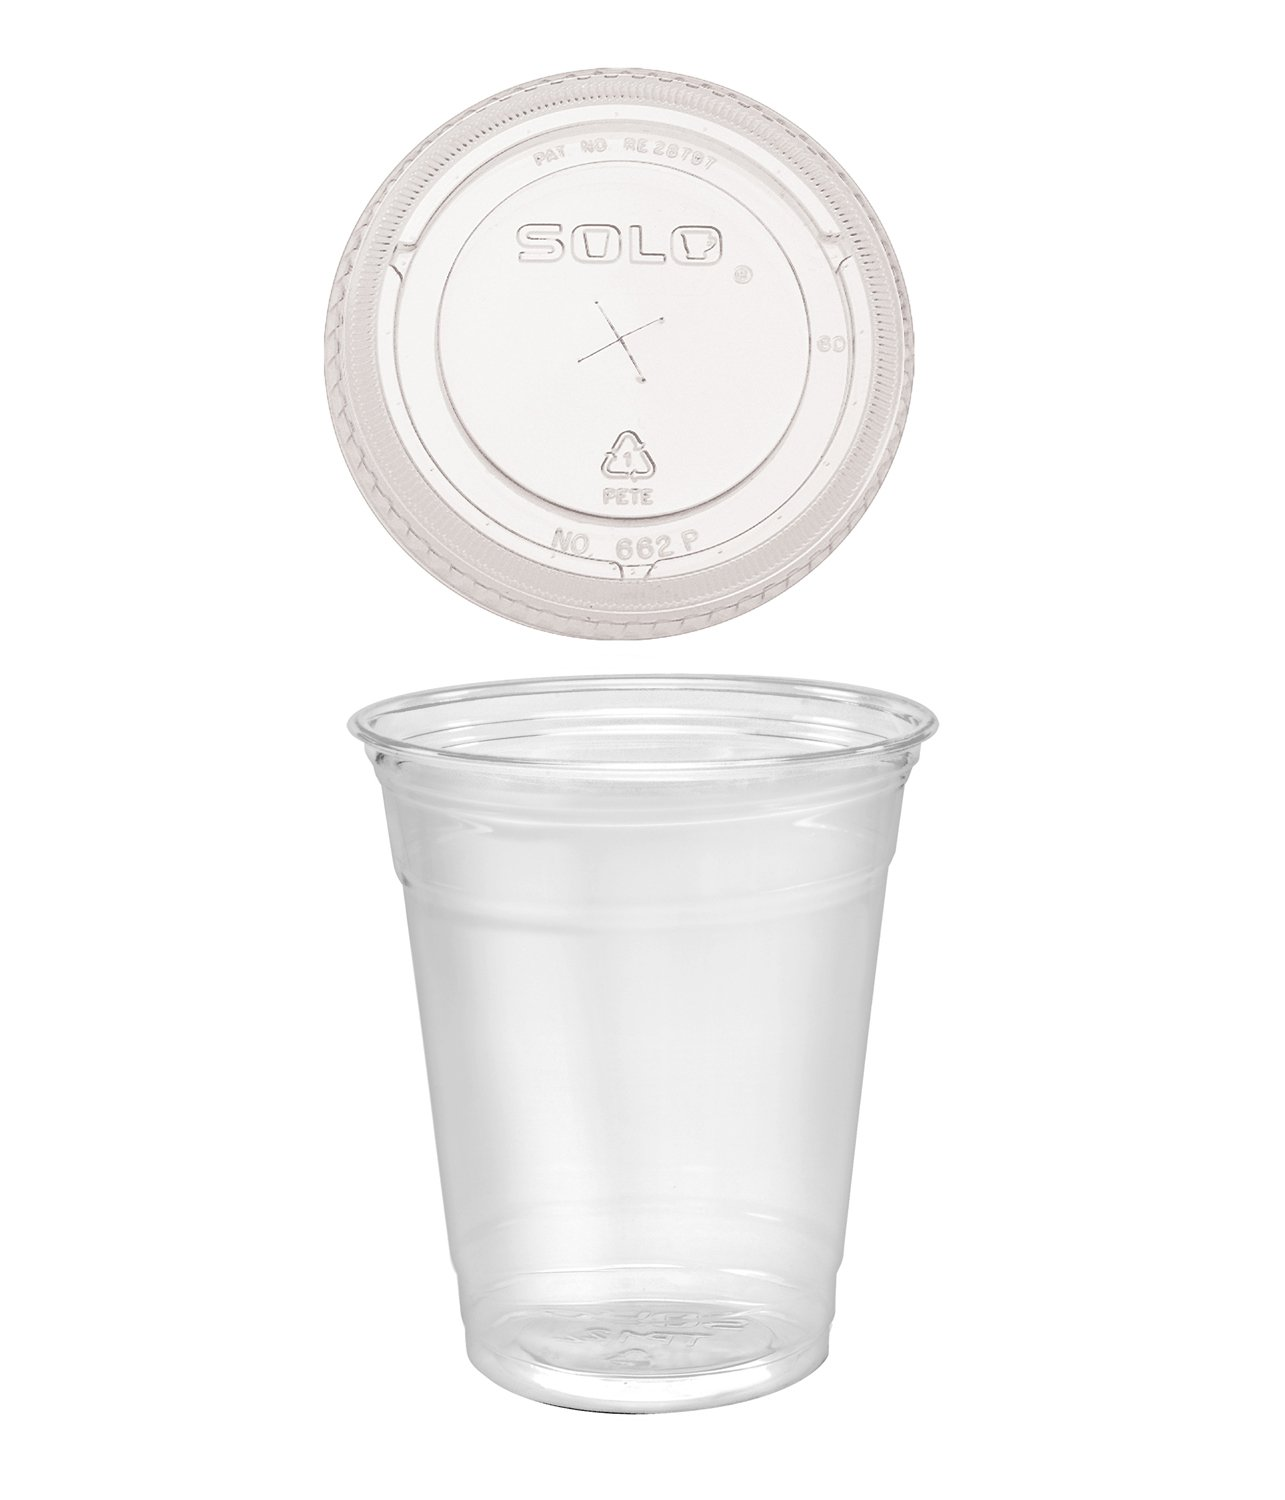 Clear Plastic Disposable Cups for Iced Coffee Bubble Boba Tea Smoothie, 12 oz - 100 Sets with Dome Lids A World of Deals® 12PET/DR662-100